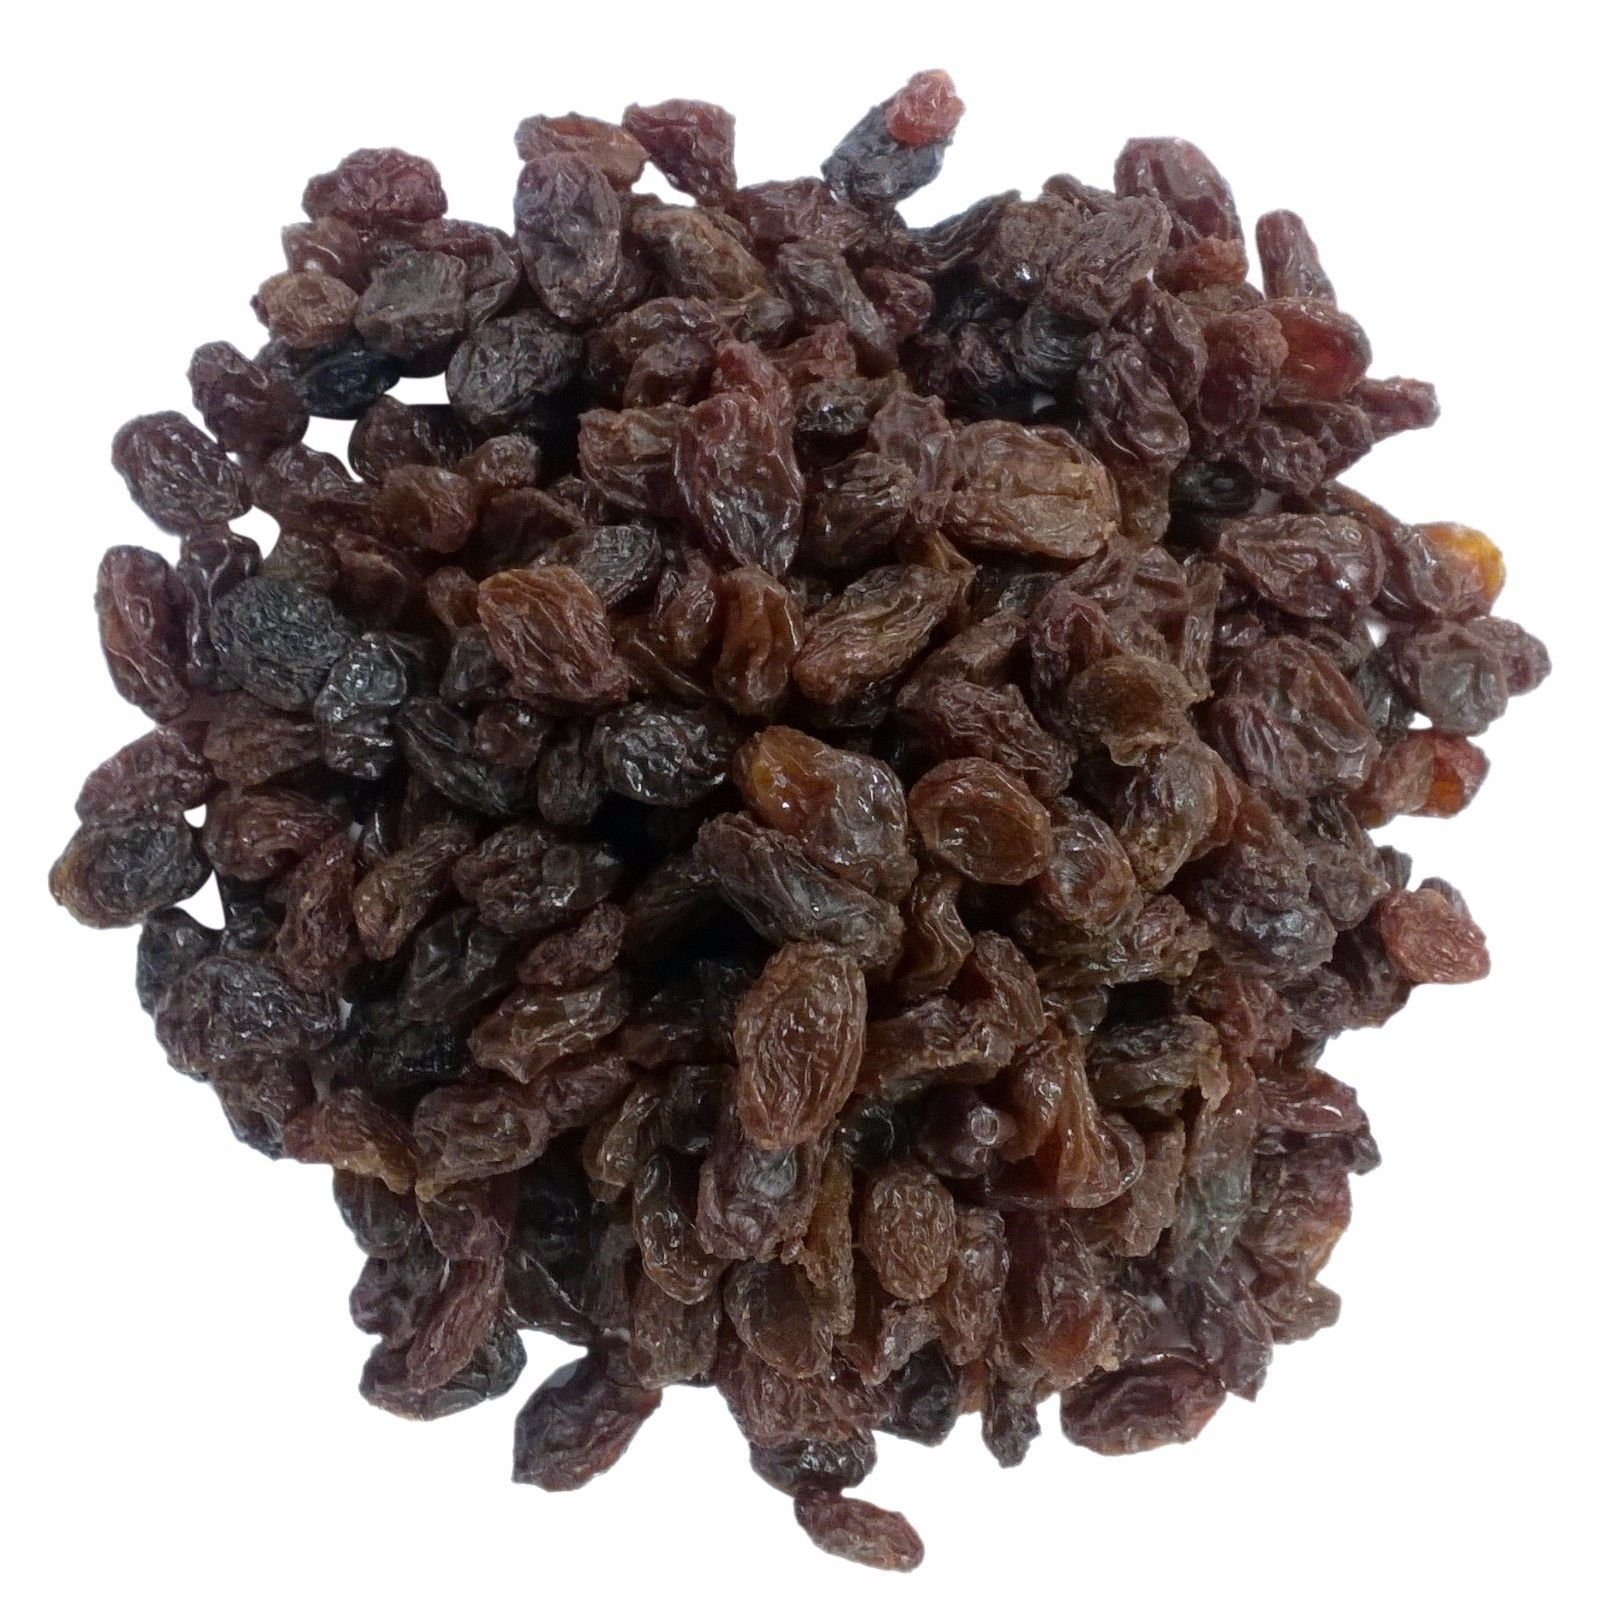 Organic California Thompson Seedless Raisins by Food To Live (Sun-Dried, Non-GMO, Kosher, Unsulphured, Bulk, Lightly Coated with Organic Sunflower Oil) — 30 Pounds